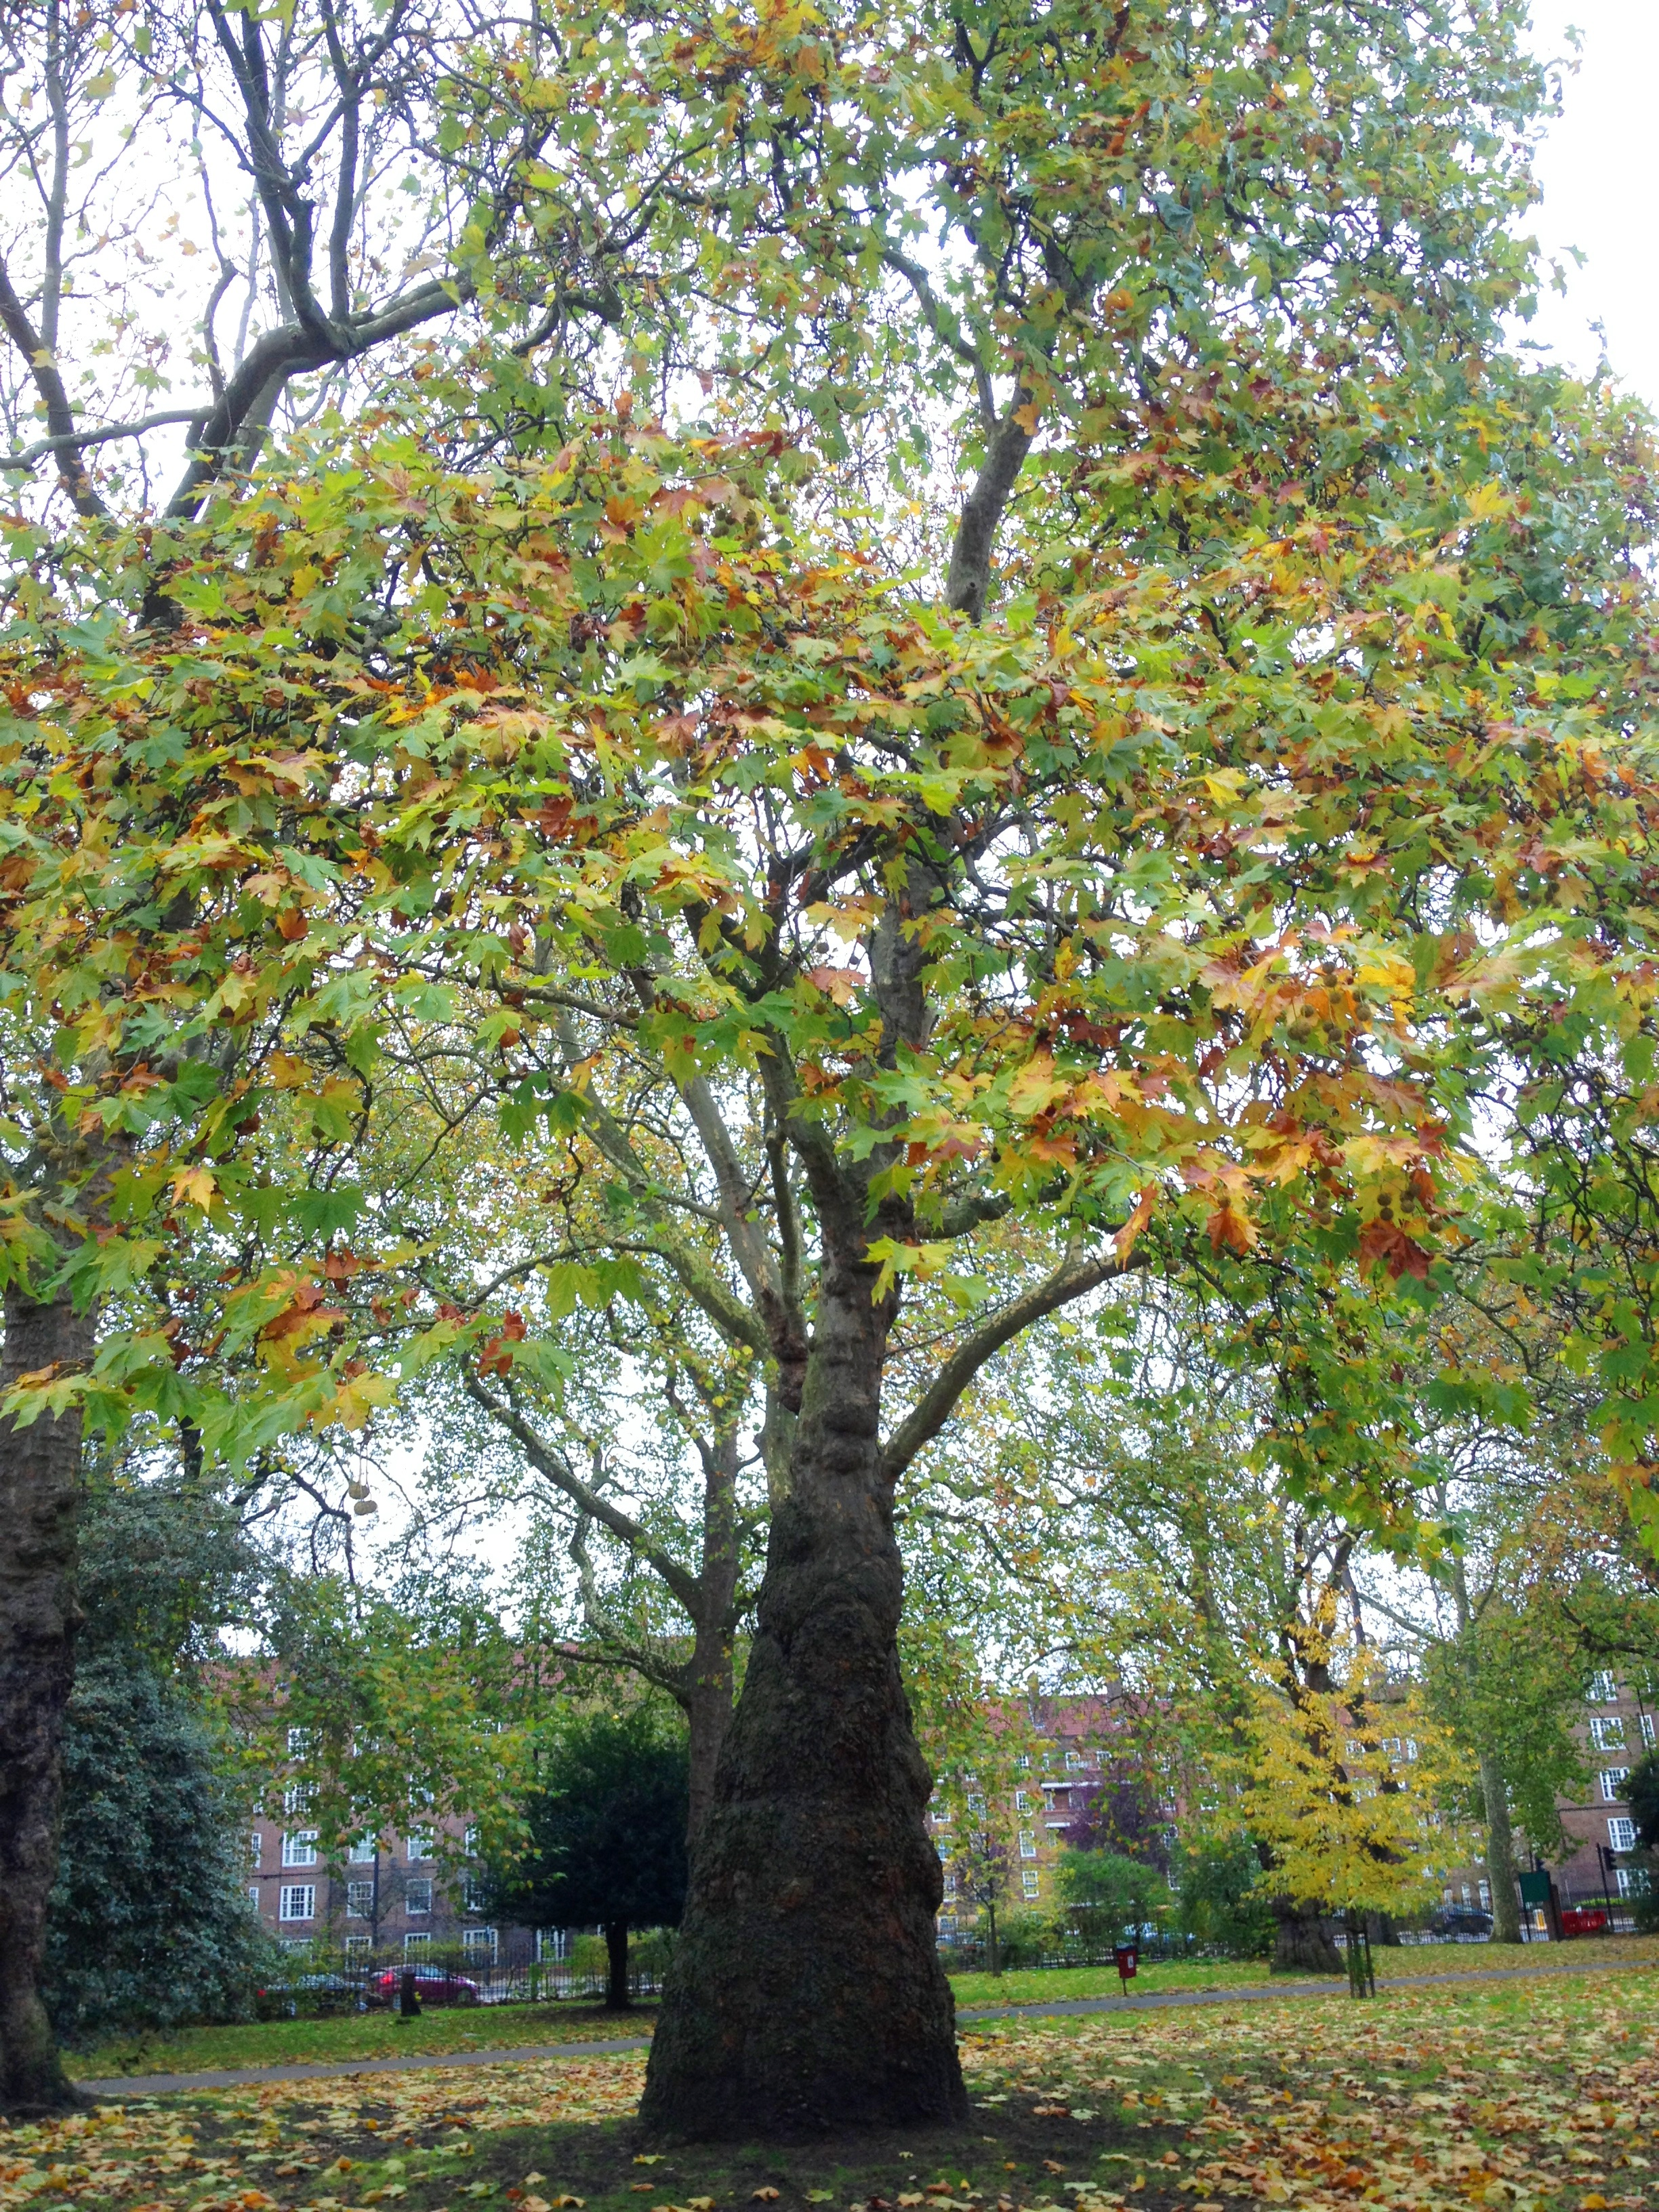 Kennington Park triangular tree - kenningtonrunoff.com